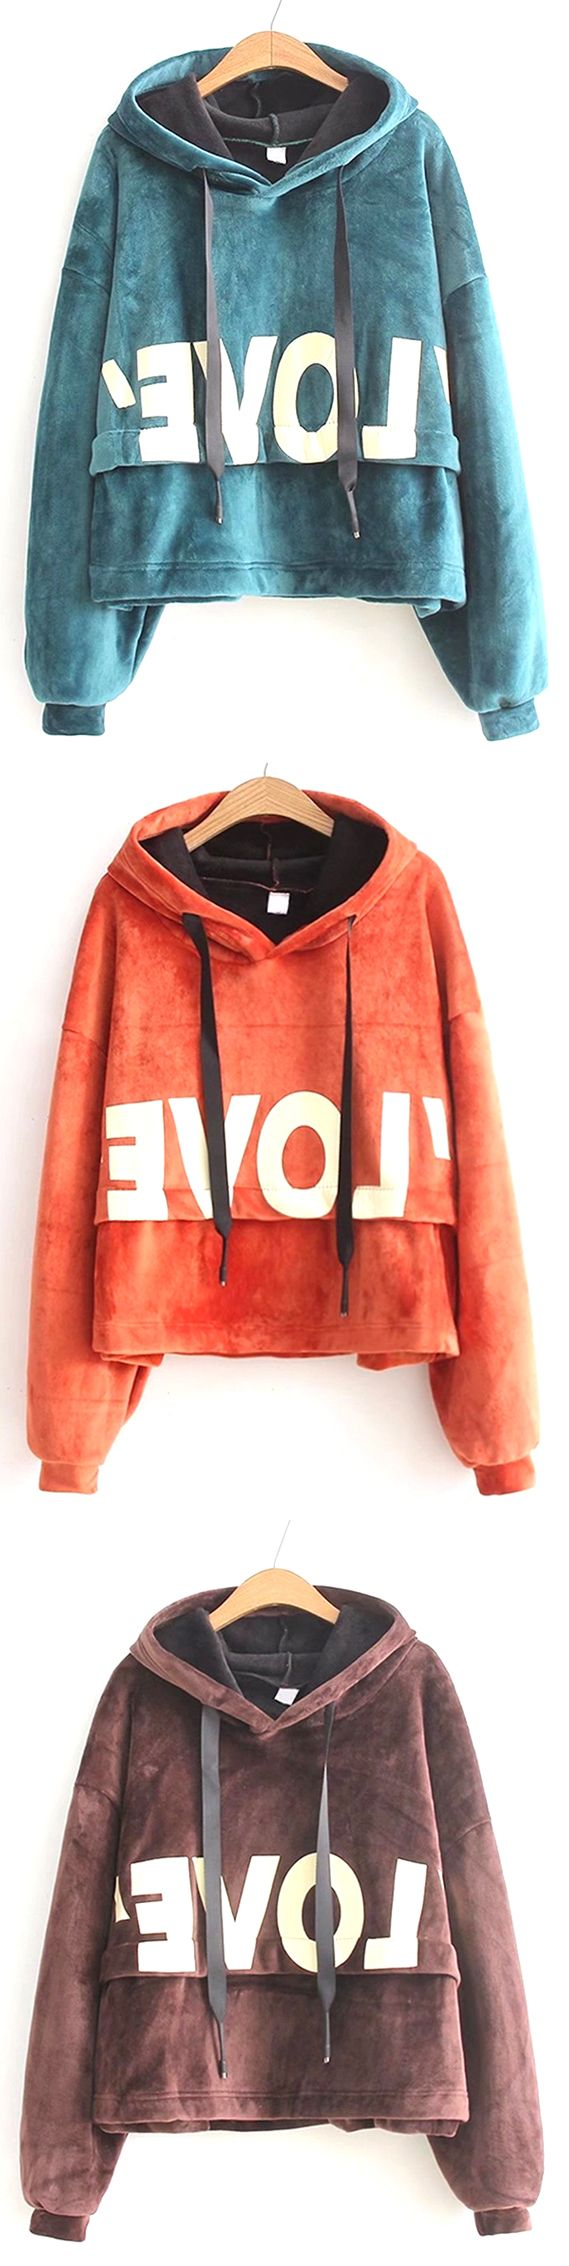 Up to 68% OFF! New Lady'S Two Sided Velvet Mosaic Of The Letter Hoodie. #Zaful #hoodies Zaful, zaful sweater, zaful outfits, fashion, style, tops, outfits, blouses, sweatshirts, hoodies, cardigan, sweater, cute sweatshirt, floral hoodie, cropped hoodies, pearl sweatshirt, fall, winter, winter outfits, winter fashion, fall fashion, fall outfits, Christmas, ugly, ugly Christmas, Thanksgiving, gift, Christmas hoodies, Black Friday, Cyber Monday @zaful Extra 10% OFF Code:ZF2017